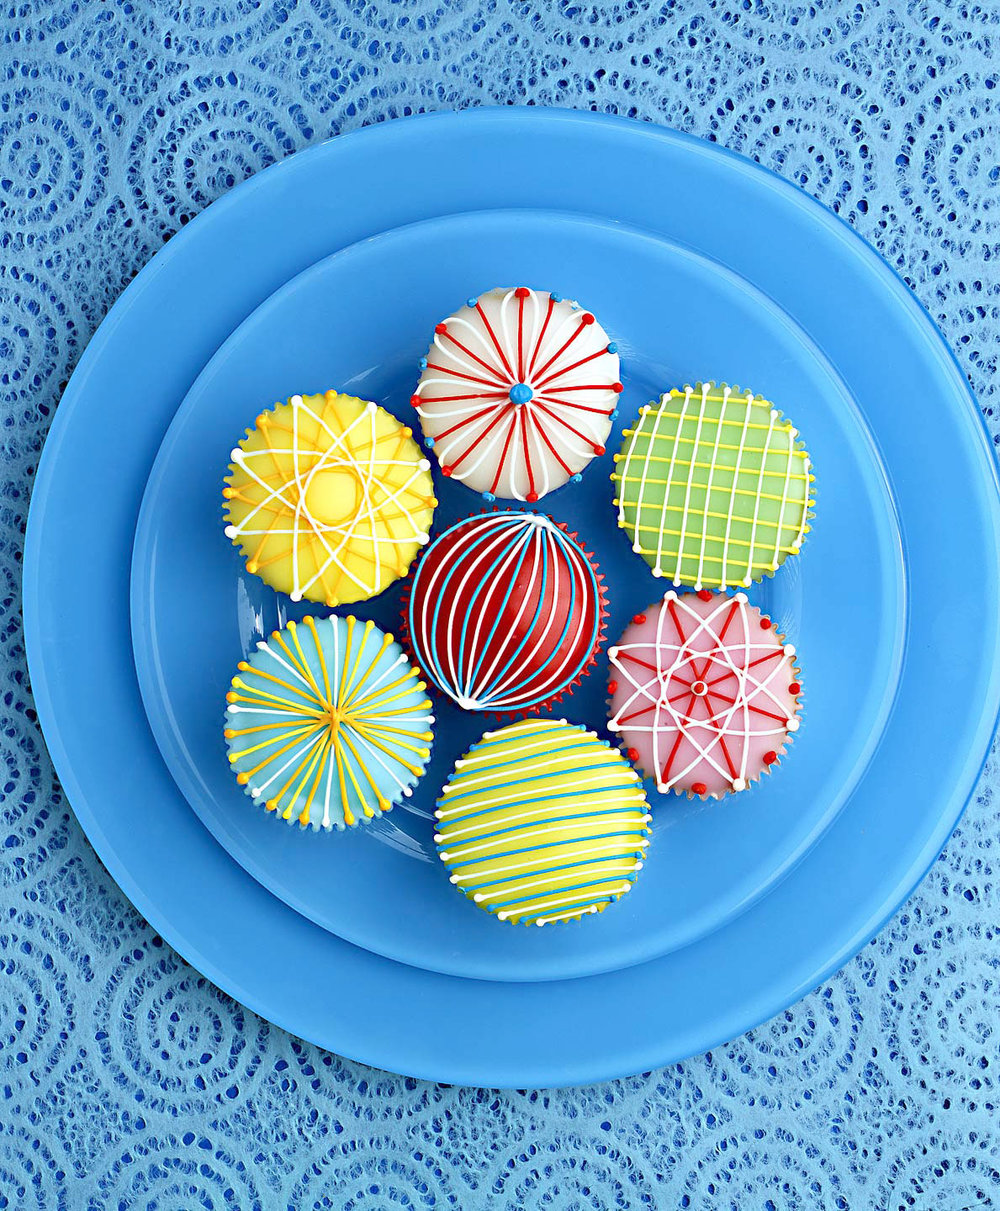 spiral-cup-cakes-copy-2_1.jpg